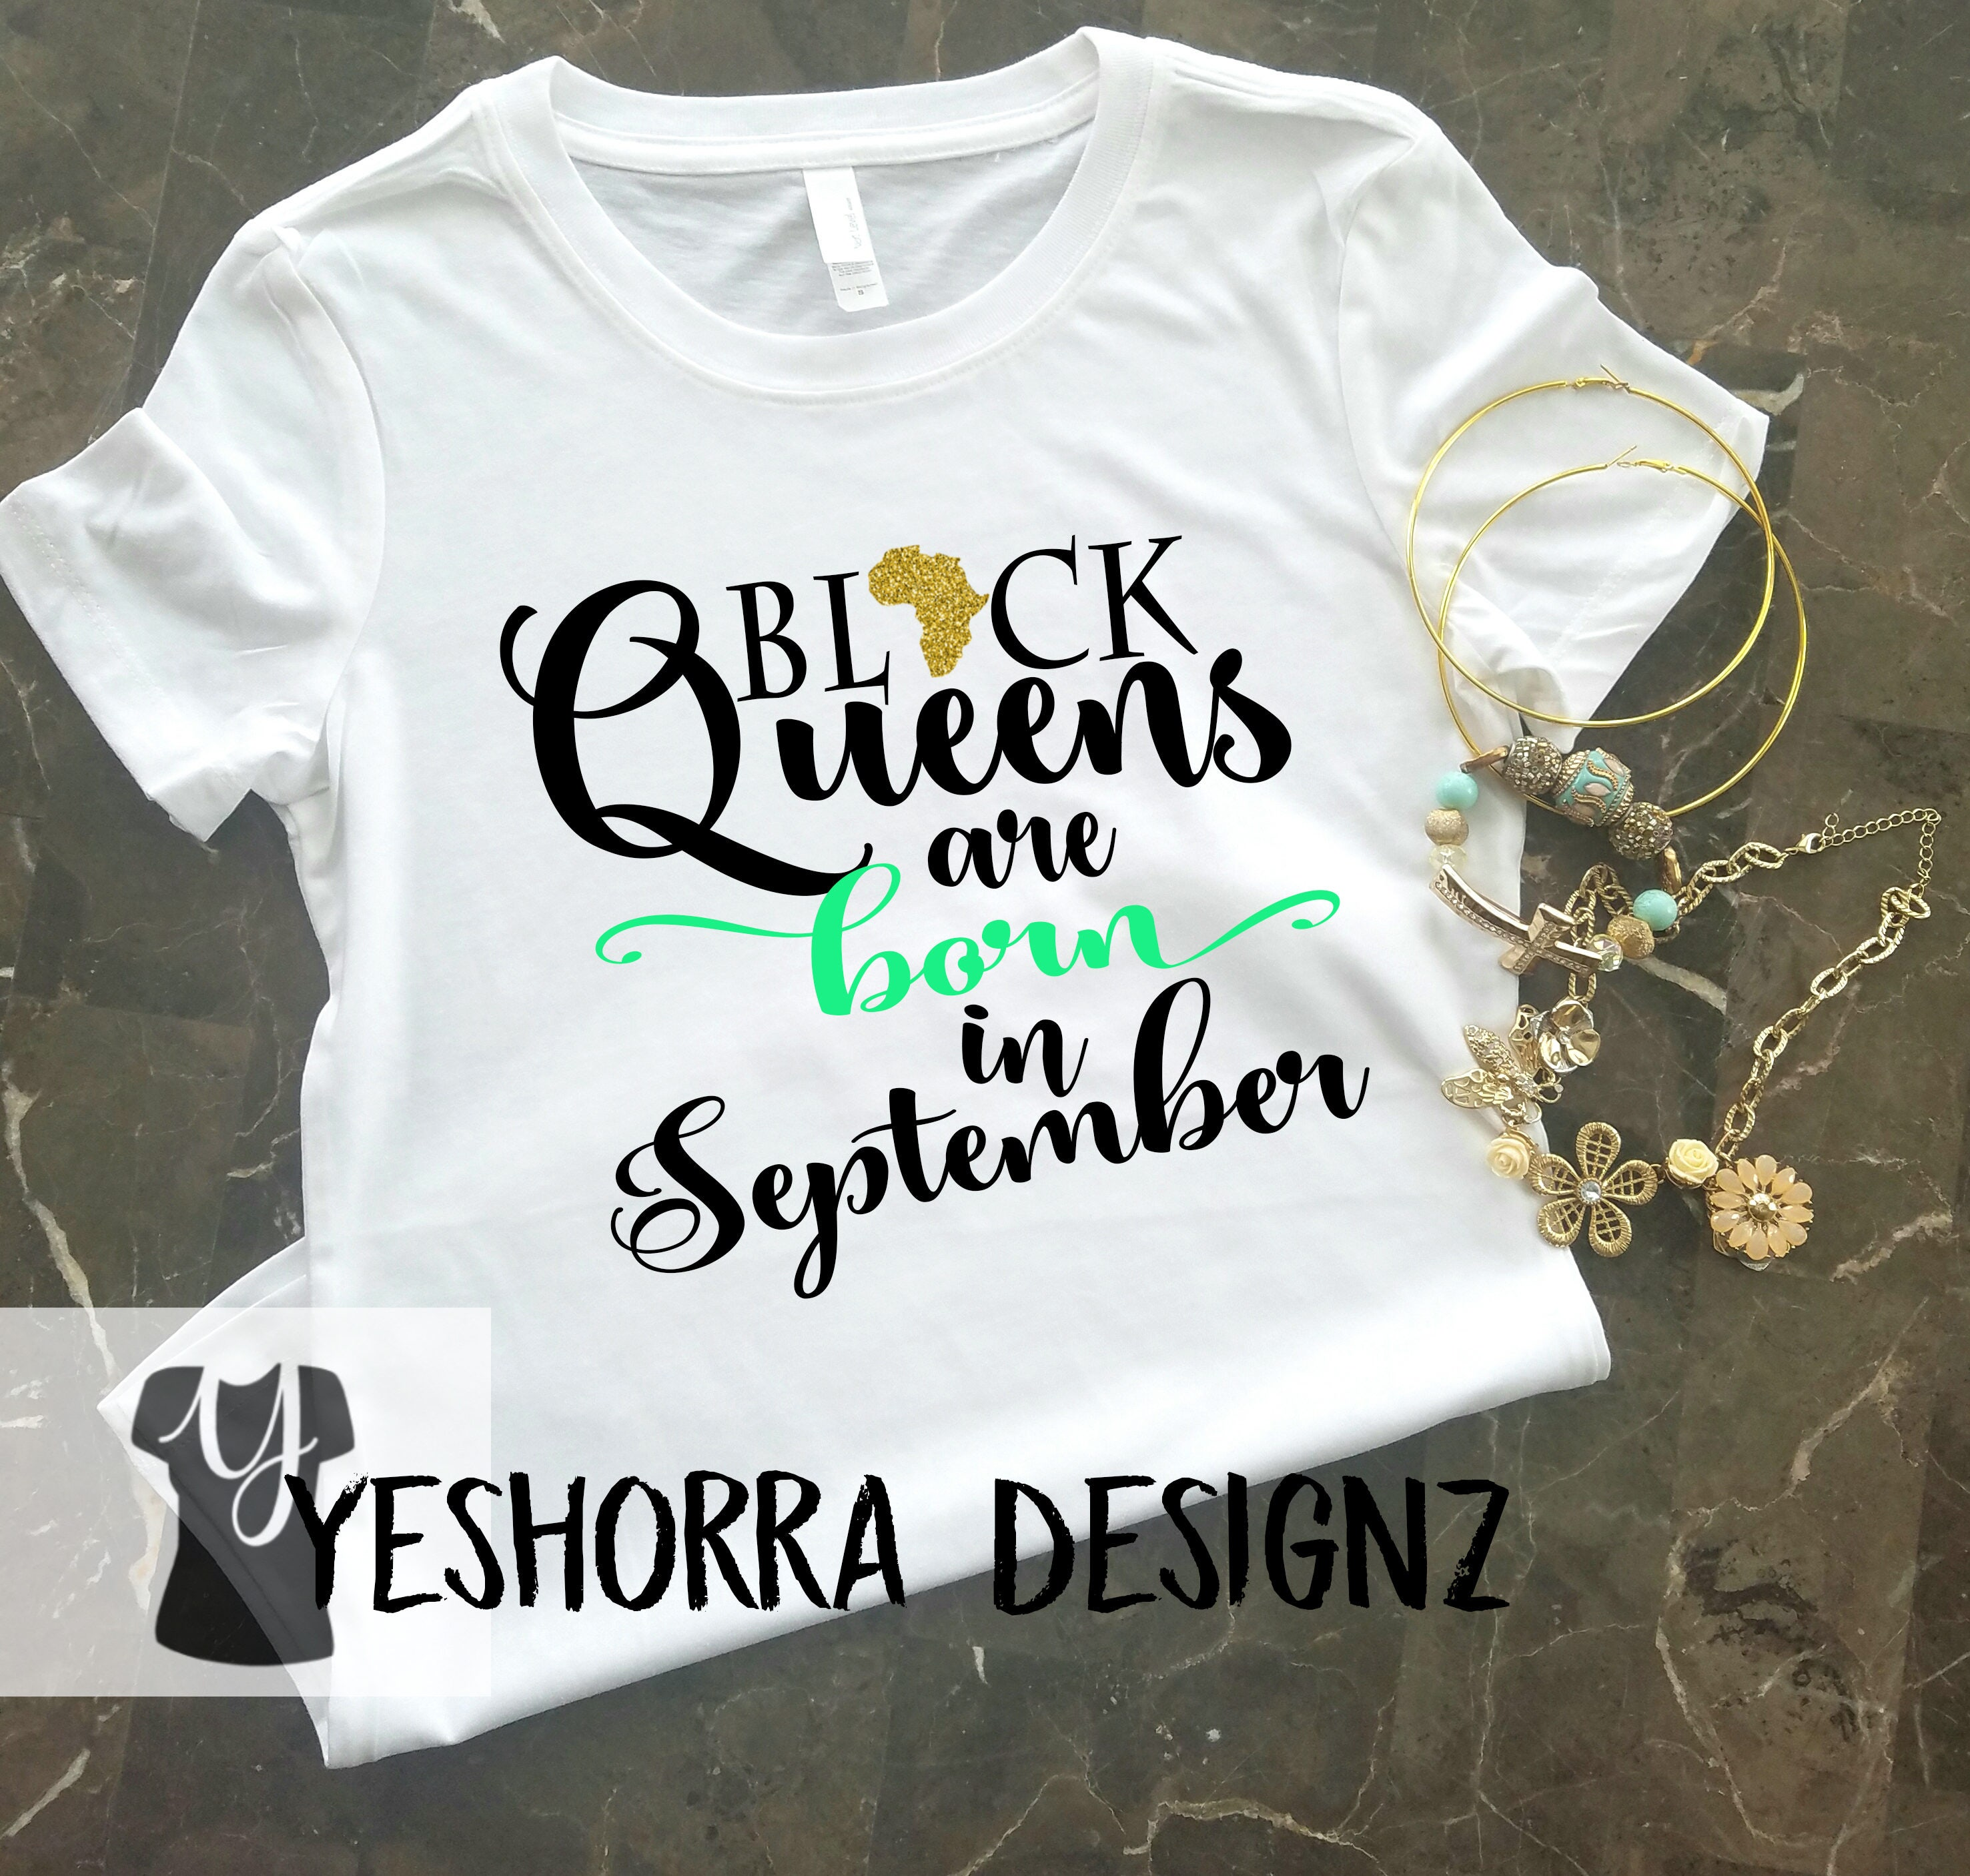 22a8e586324c ... January Birthday Queen: Black Queens Are Born In September Birthday  Queen Shirt